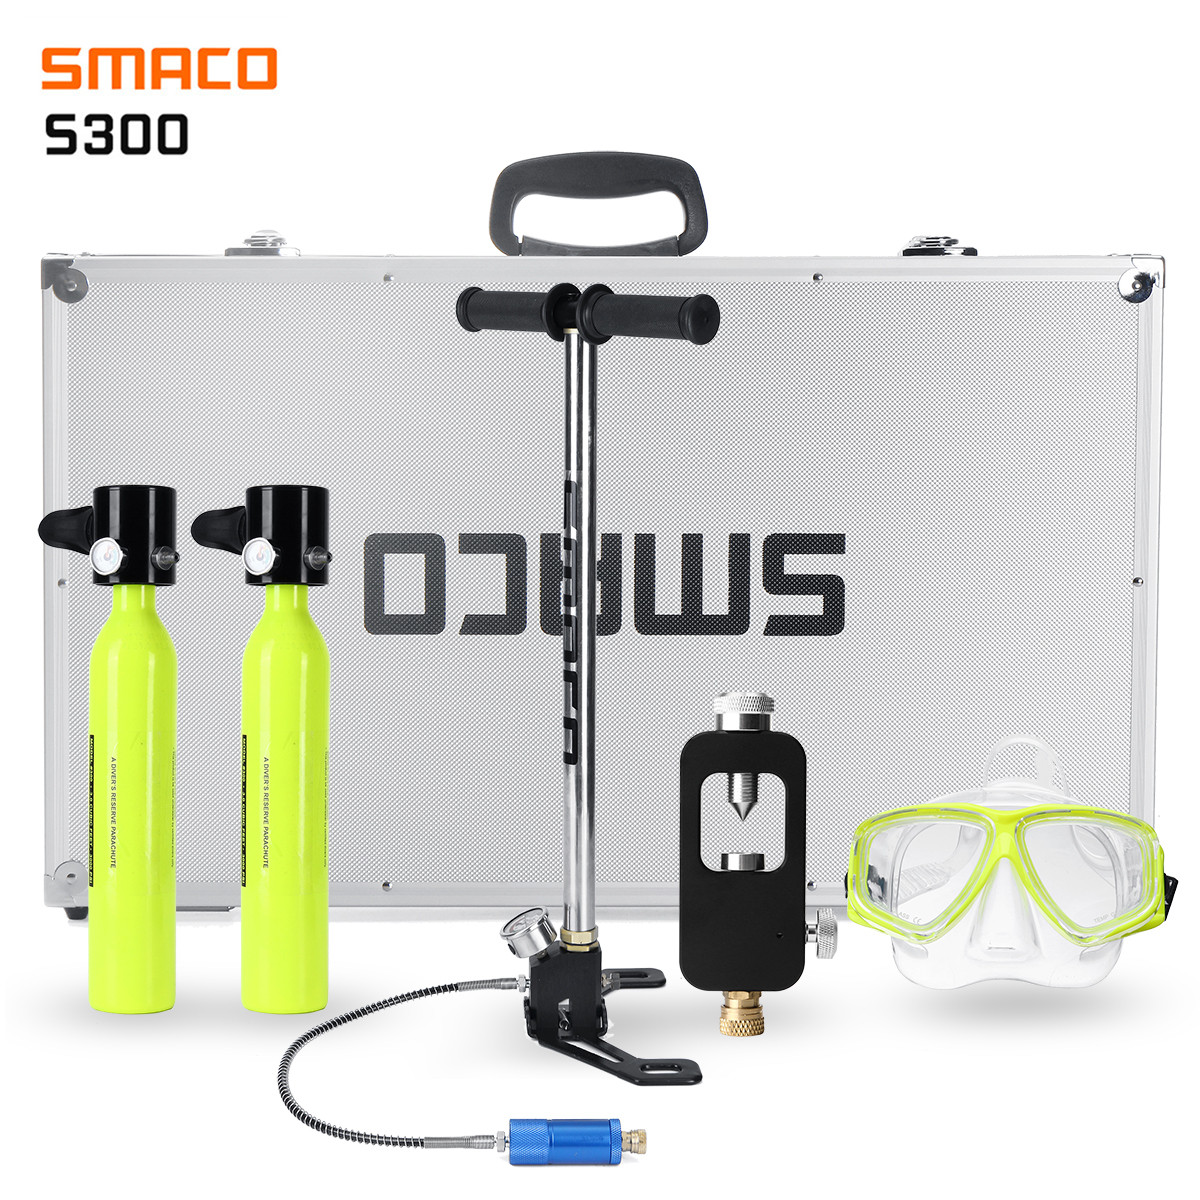 SMACO 2 People Set Diving System Mini Scuba Cylinder Scuba Oxygen Reserve Air Tank Pump Aluminum Box Snorkeling Diving Equipment